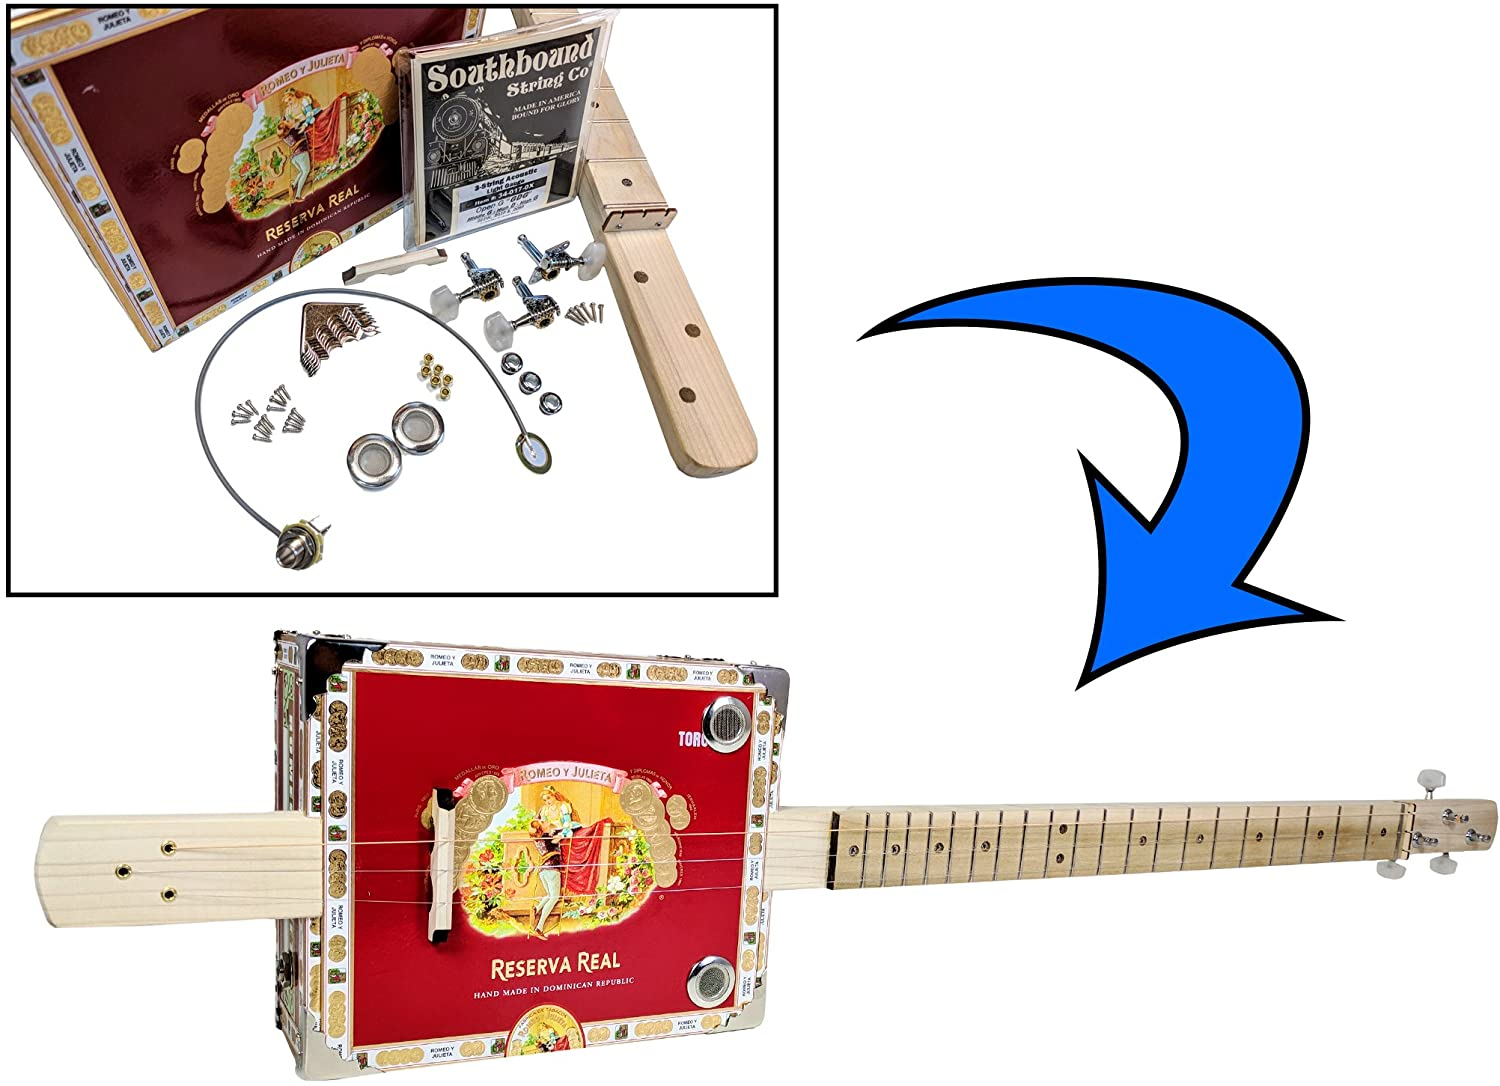 Complete DIY 3-String Fretted Cigar Box Guitar Kit with Neck – includes Acoustic/Electric Pickup